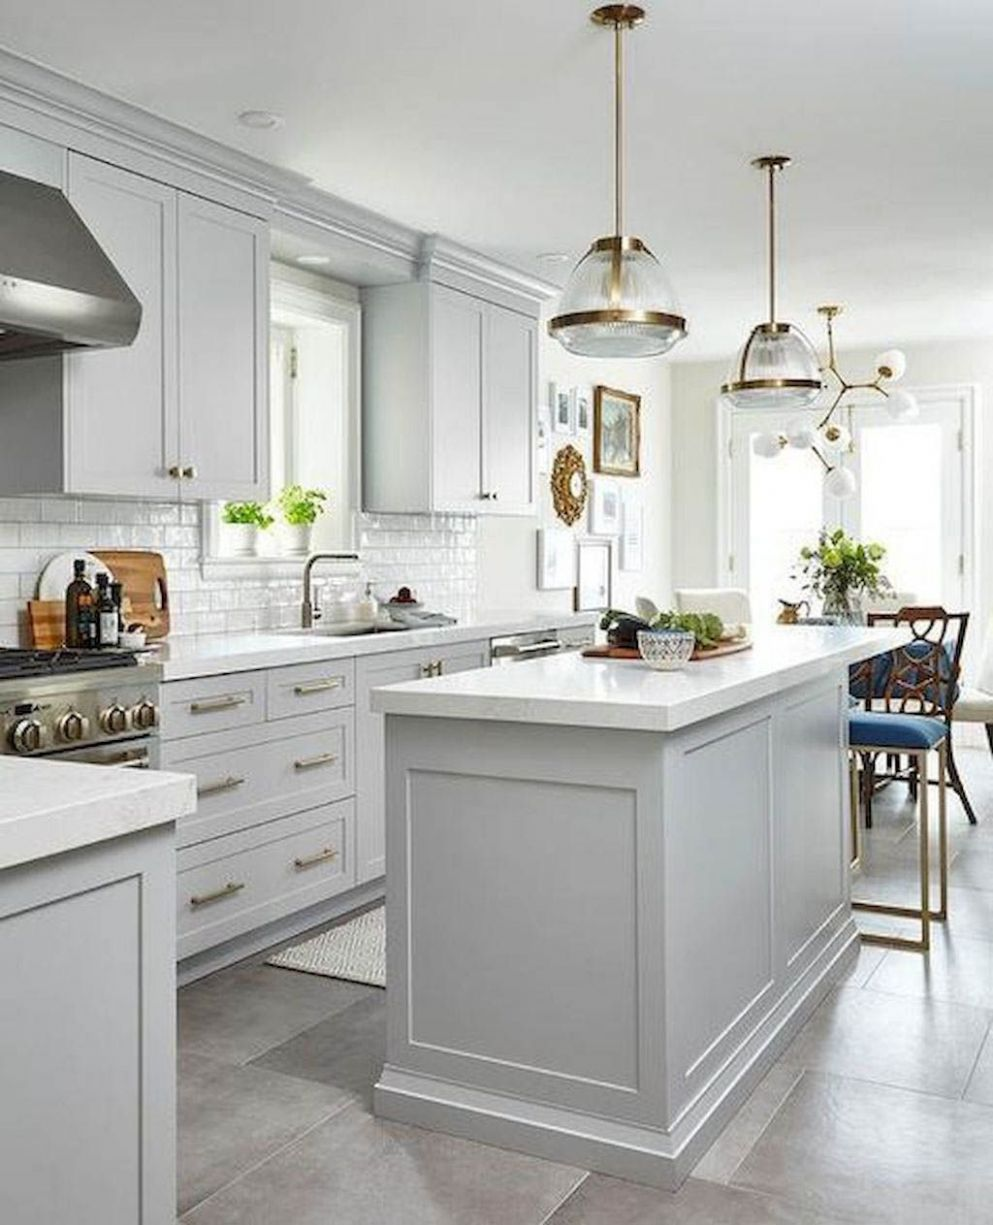 Stunning Kitchen Lighting Ideas for Your New Kitchen | Kitchen ..